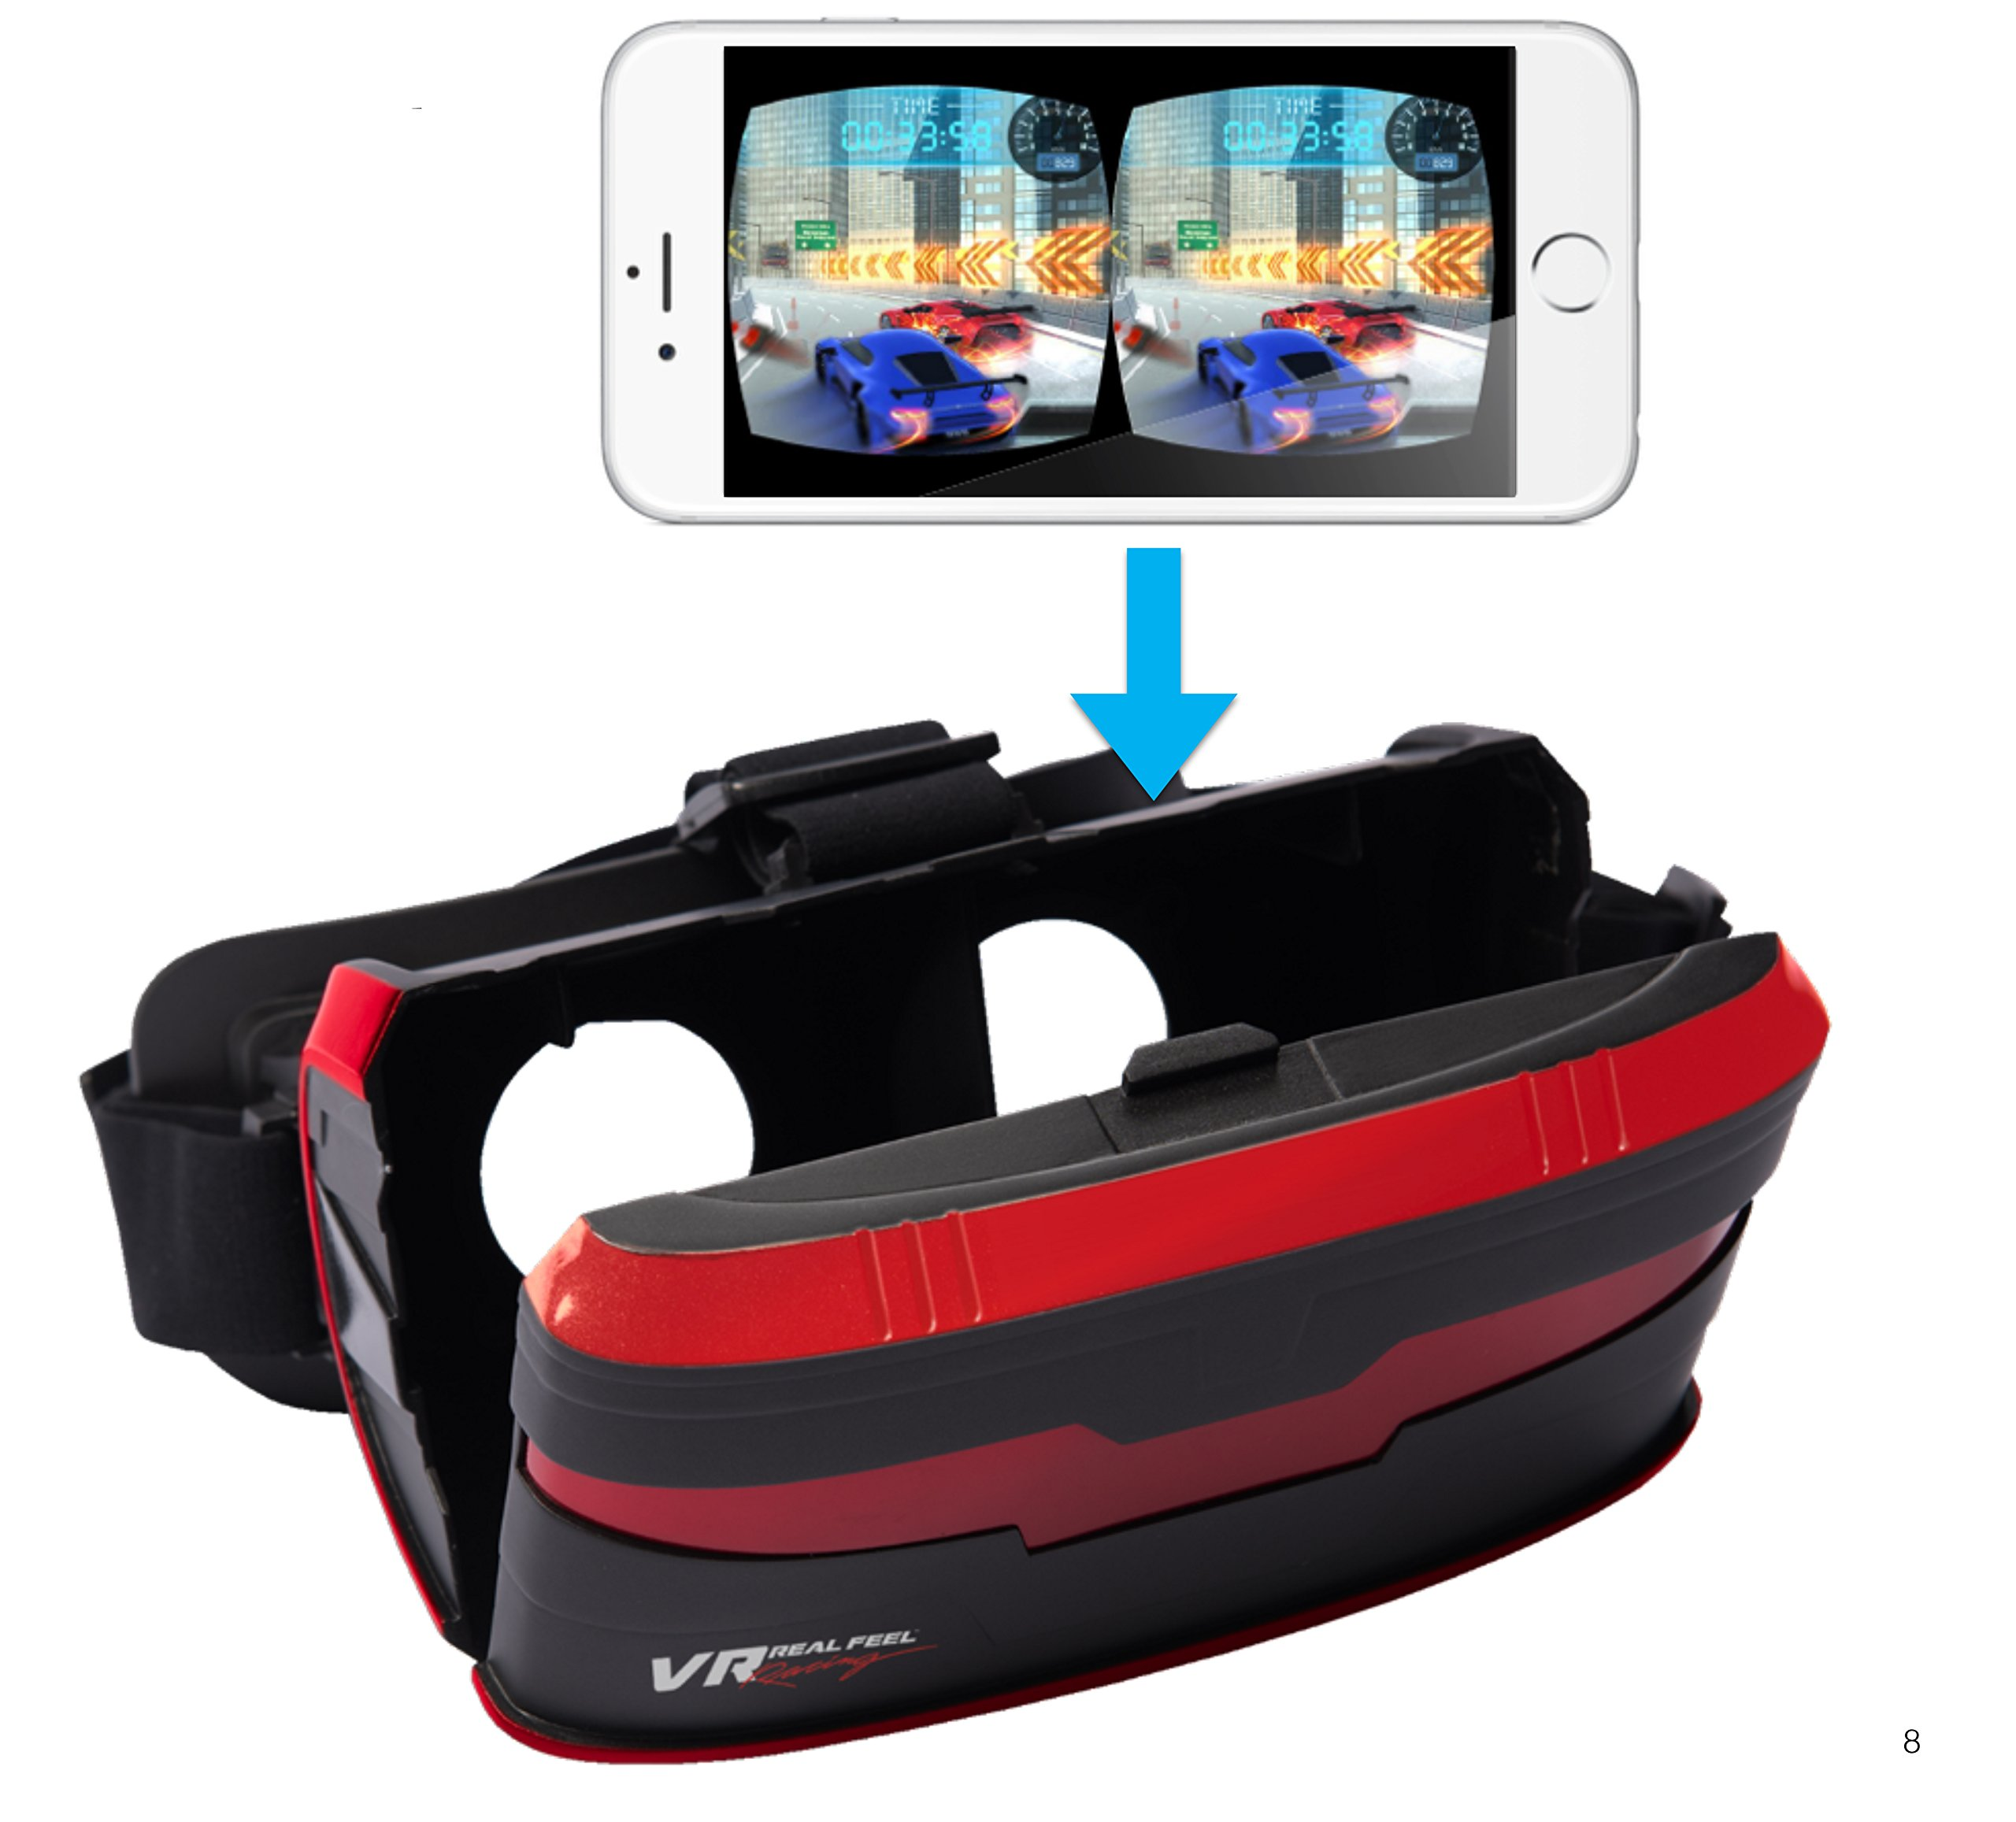 VR Real Feel Virtual Reality Car Racing Gaming System with Bluetooth Steering Wheel and Headset Goggles Viewer Glasses for iOS iPhone and Android by VR Entertainment (Image #3)